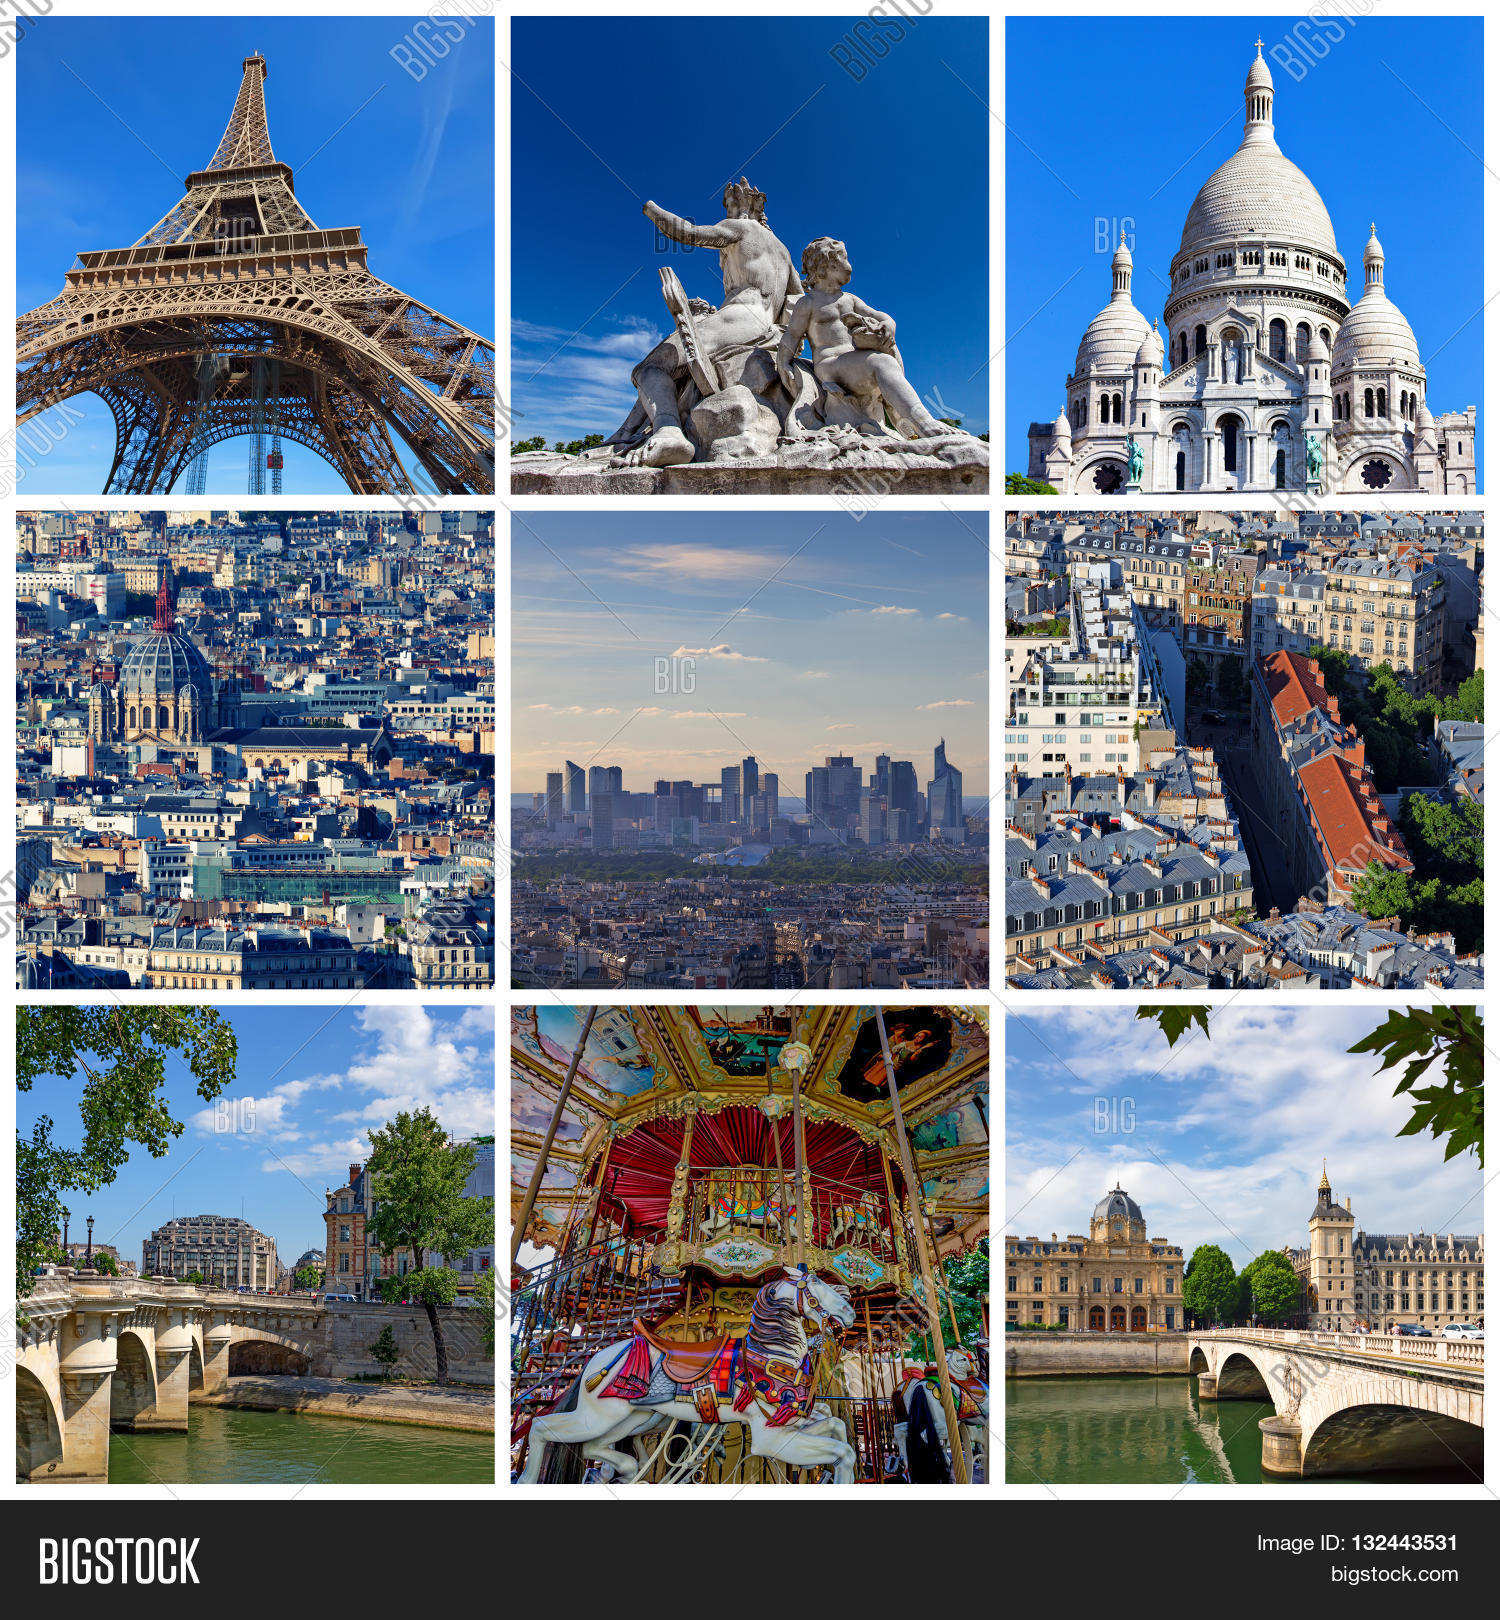 collage some pictures different image u0026 photo bigstock